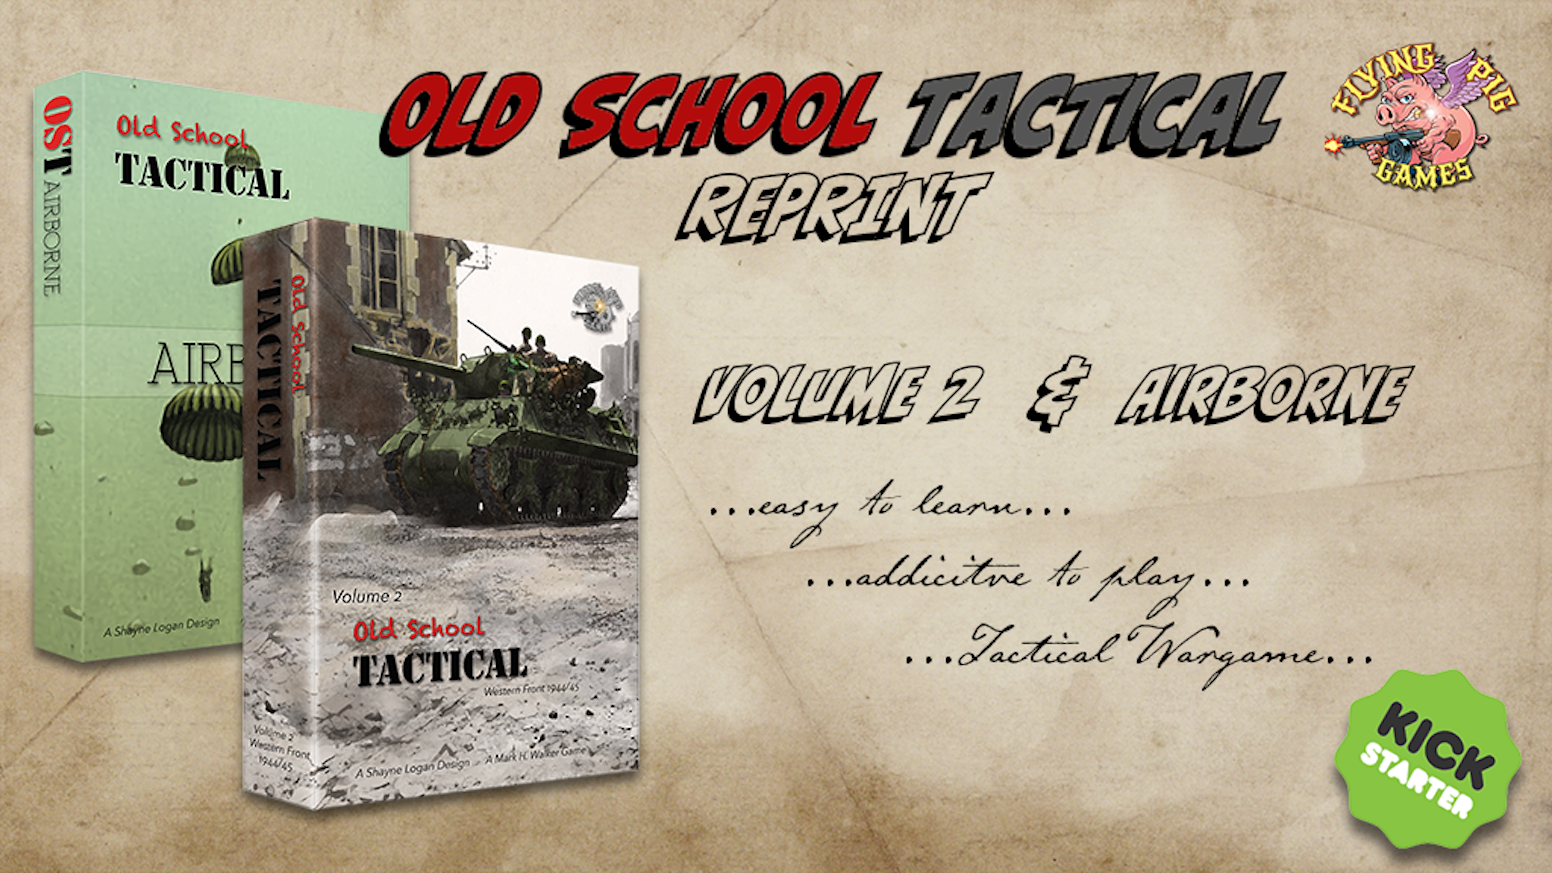 The horror! We have sold out of Old School Tactical VOL II and its Airborne Expansion! Help us fund the reprinting of these classics!